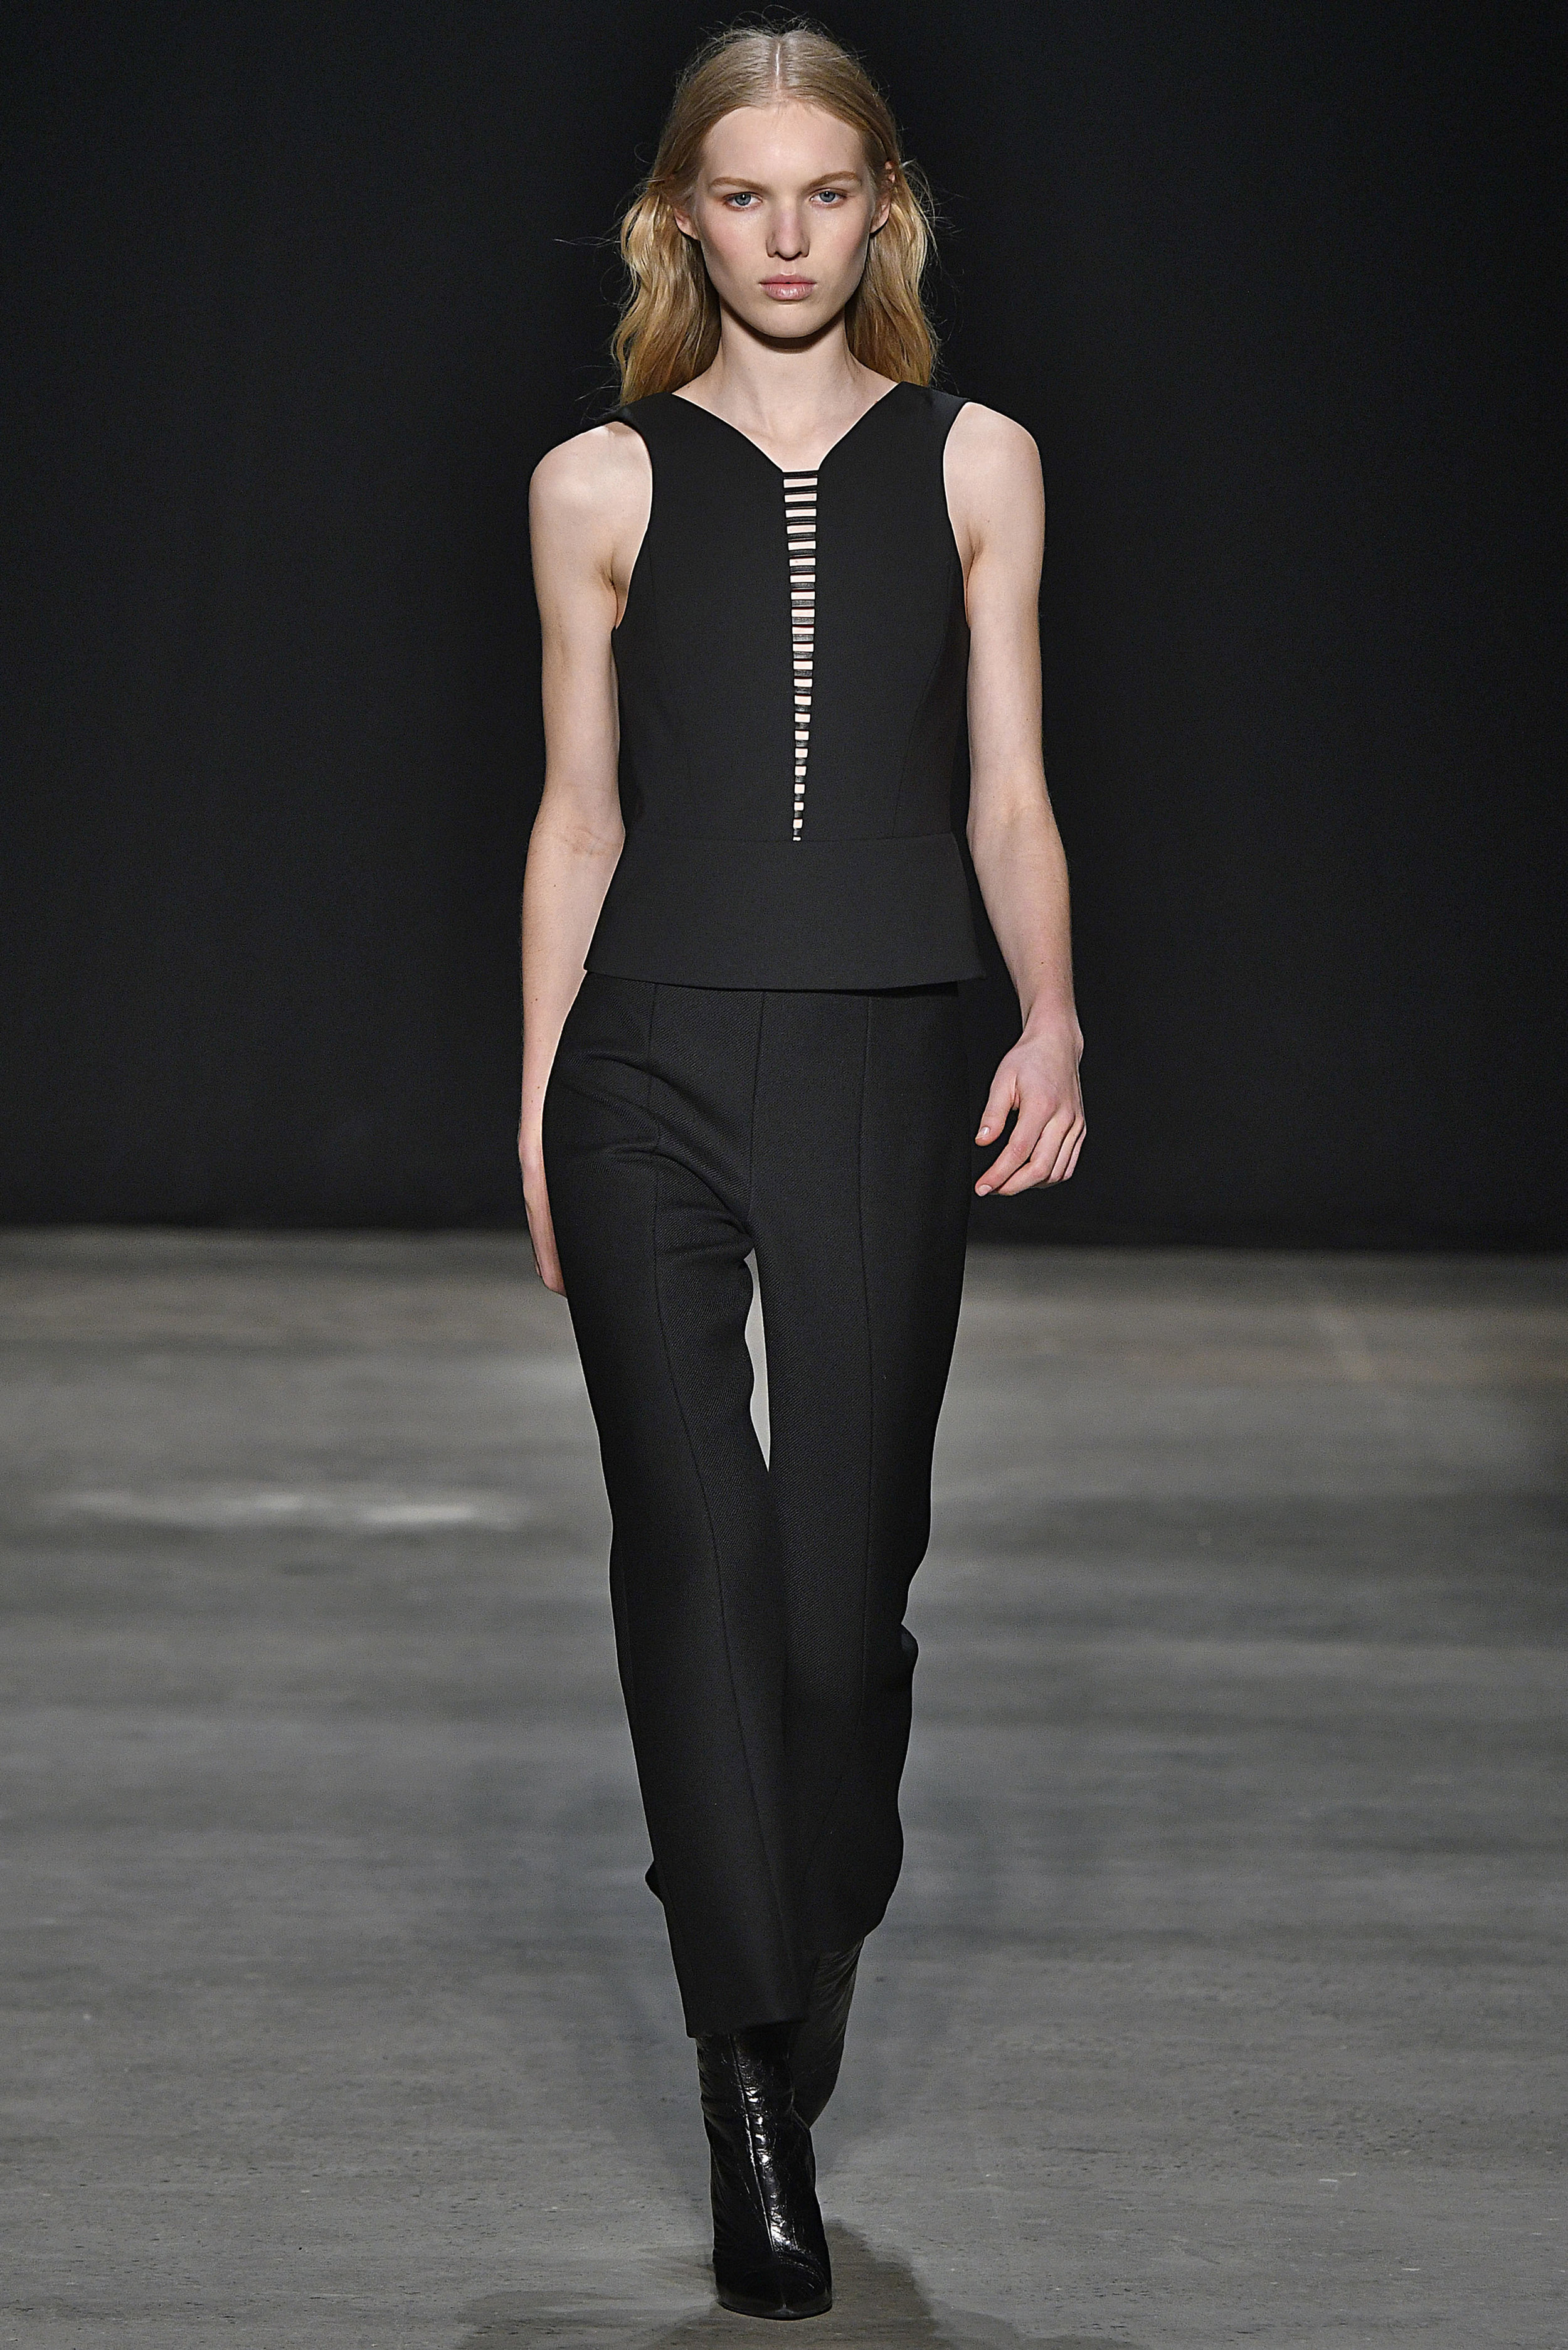 Narciso Rodriguez Fall 2017 collection.  Black pressed wool top with black wool twill pant.